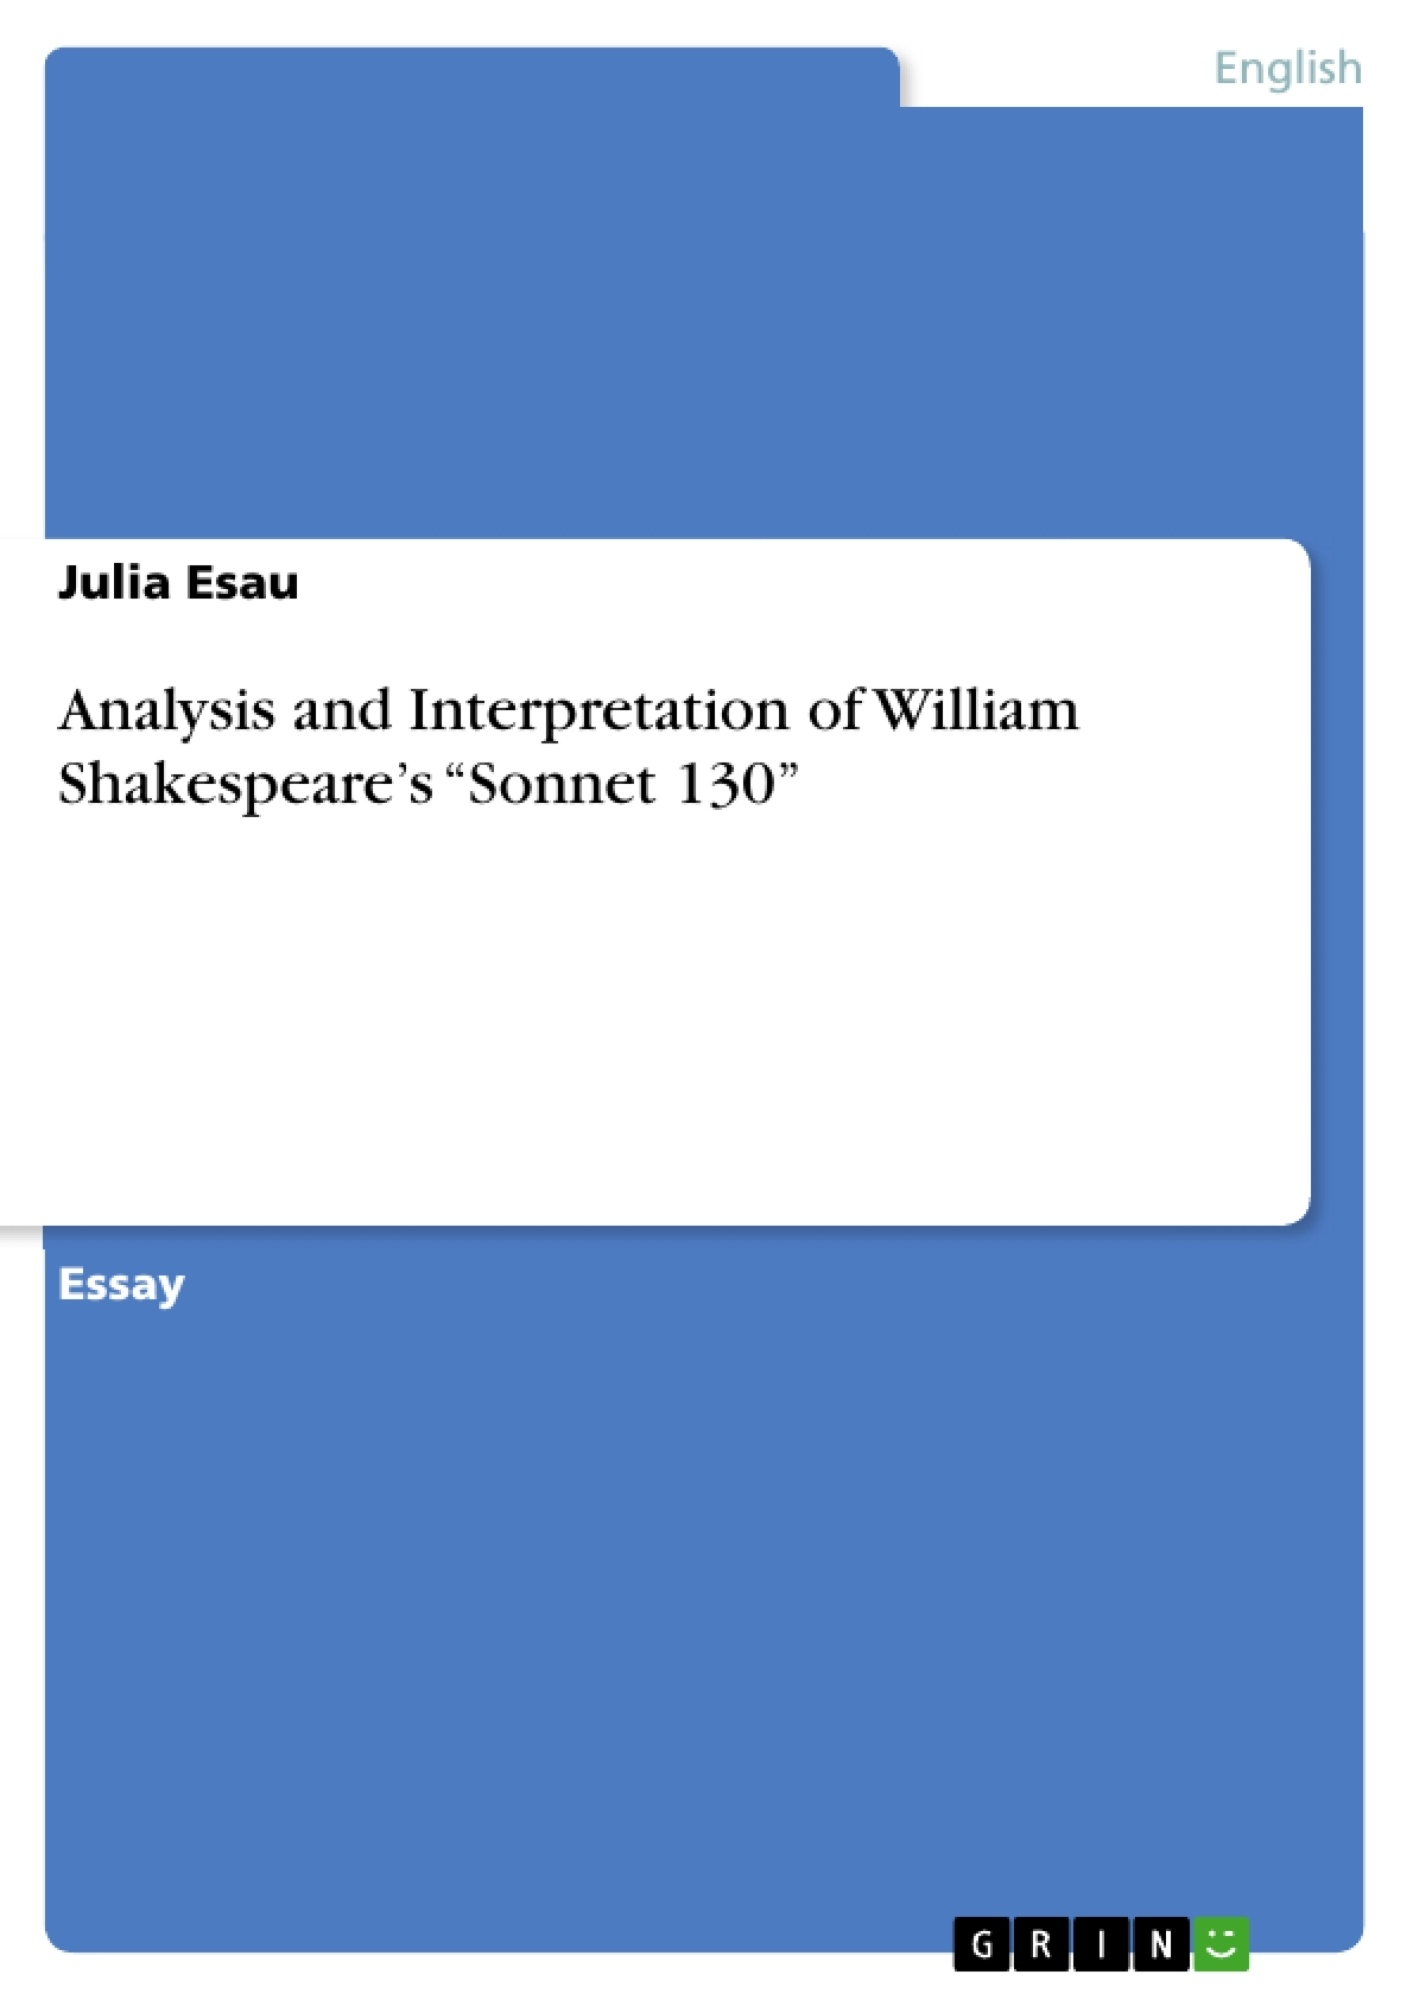 analysis and interpretation of william shakespeare s sonnet 130 analysis and interpretation of william shakespeare s sonnet 130 publish your master s thesis bachelor s thesis essay or term paper